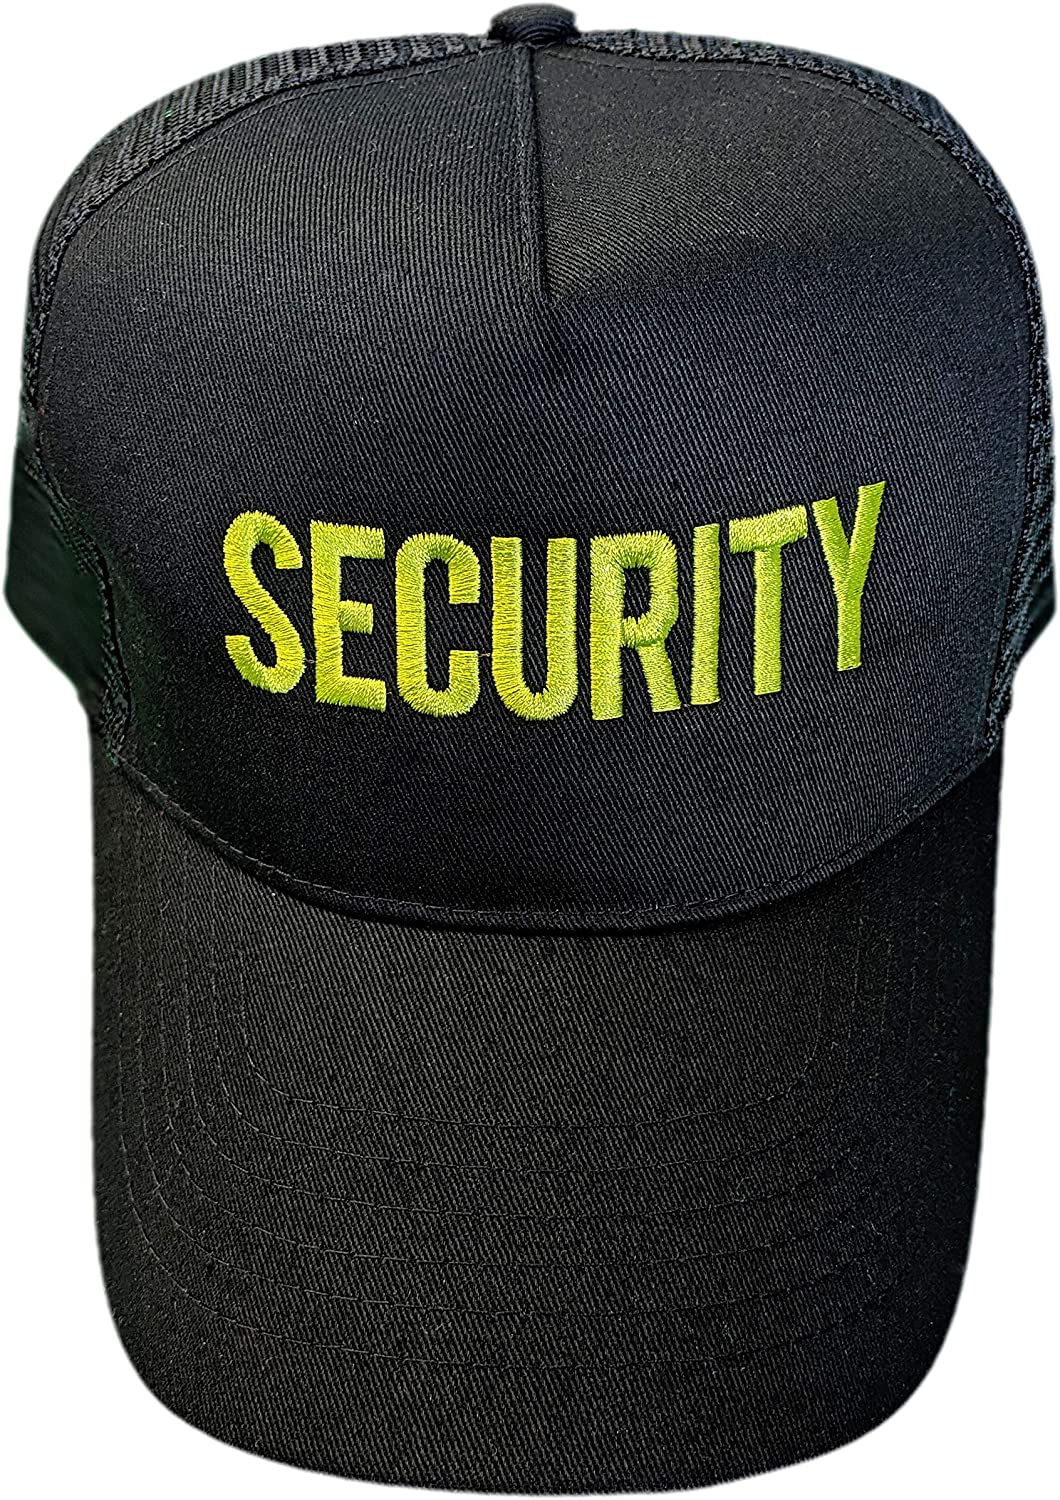 NYC FACTORY Embroidered USA Security Baseball Hat Recycled Cotton Mesh Trucker Cap